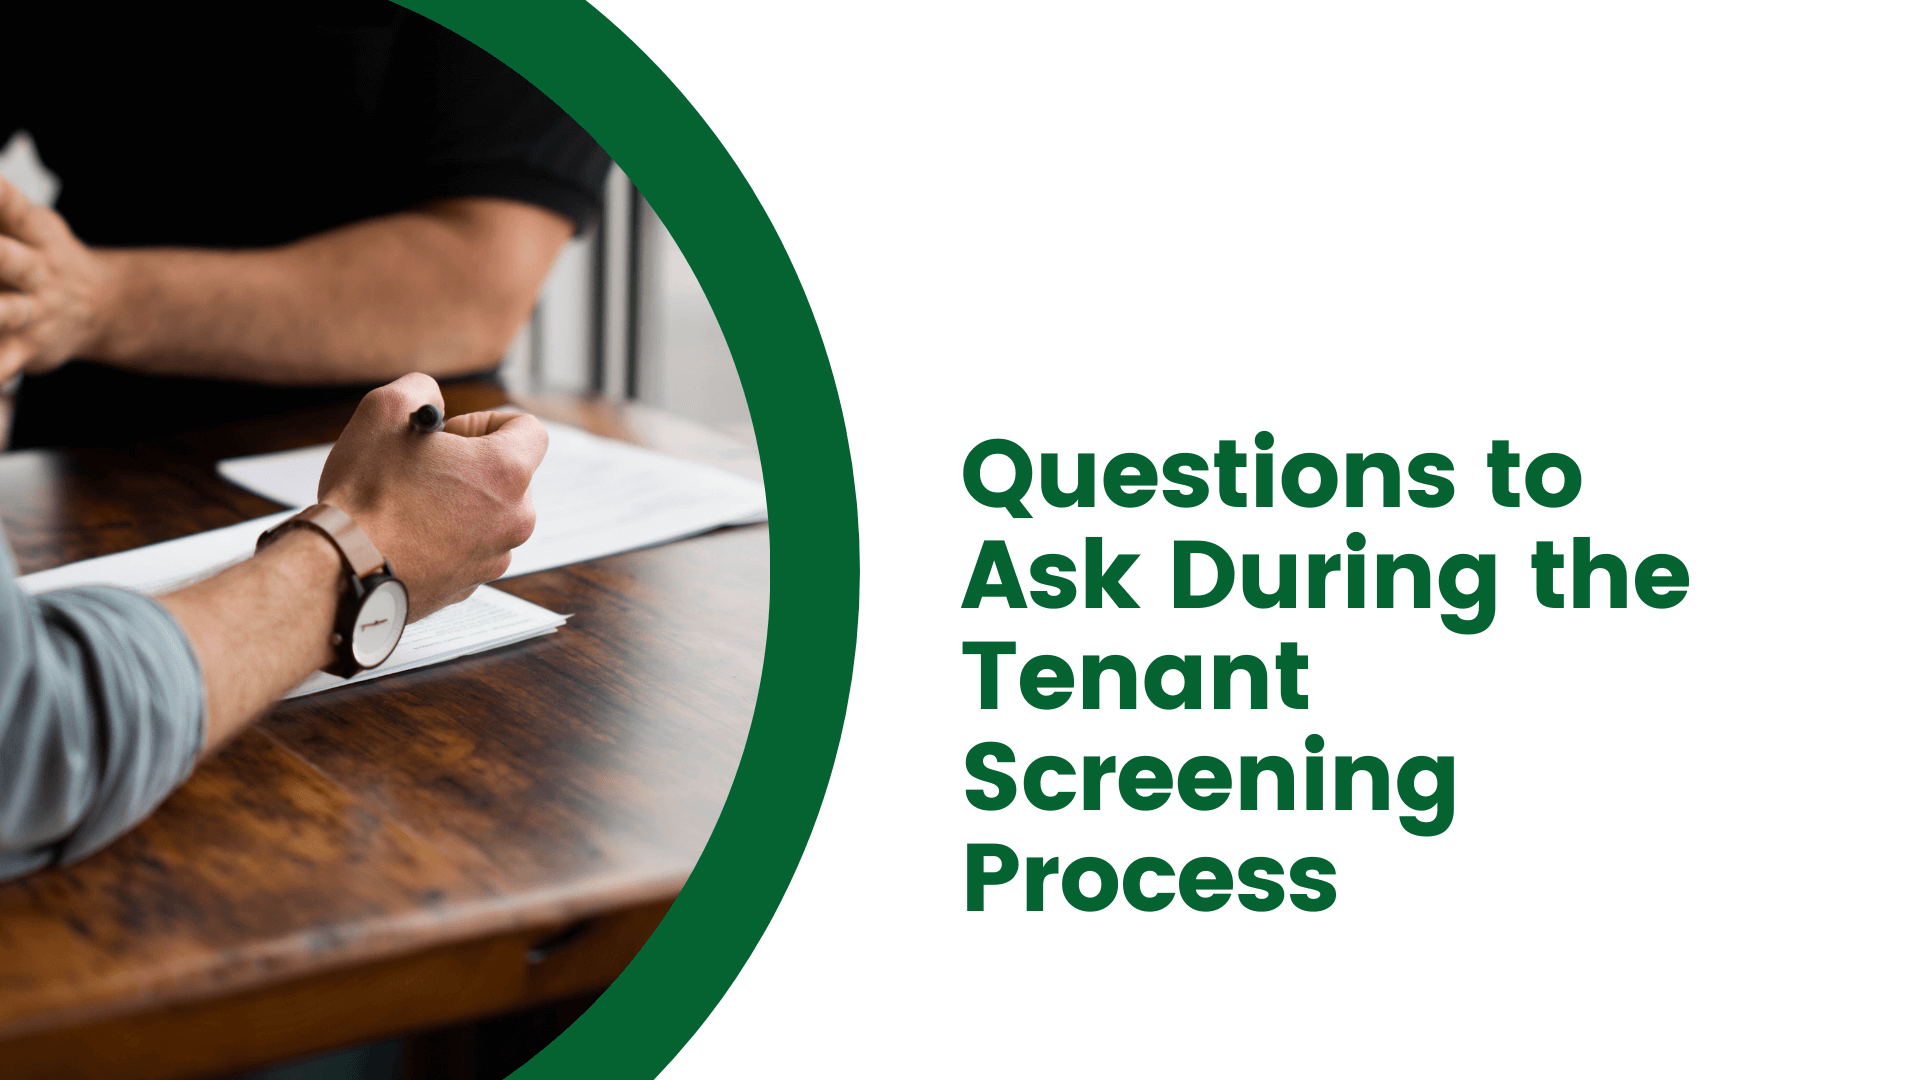 Questions to Ask During the Tenant Screening Process | San Diego Landlord Advice - article banner